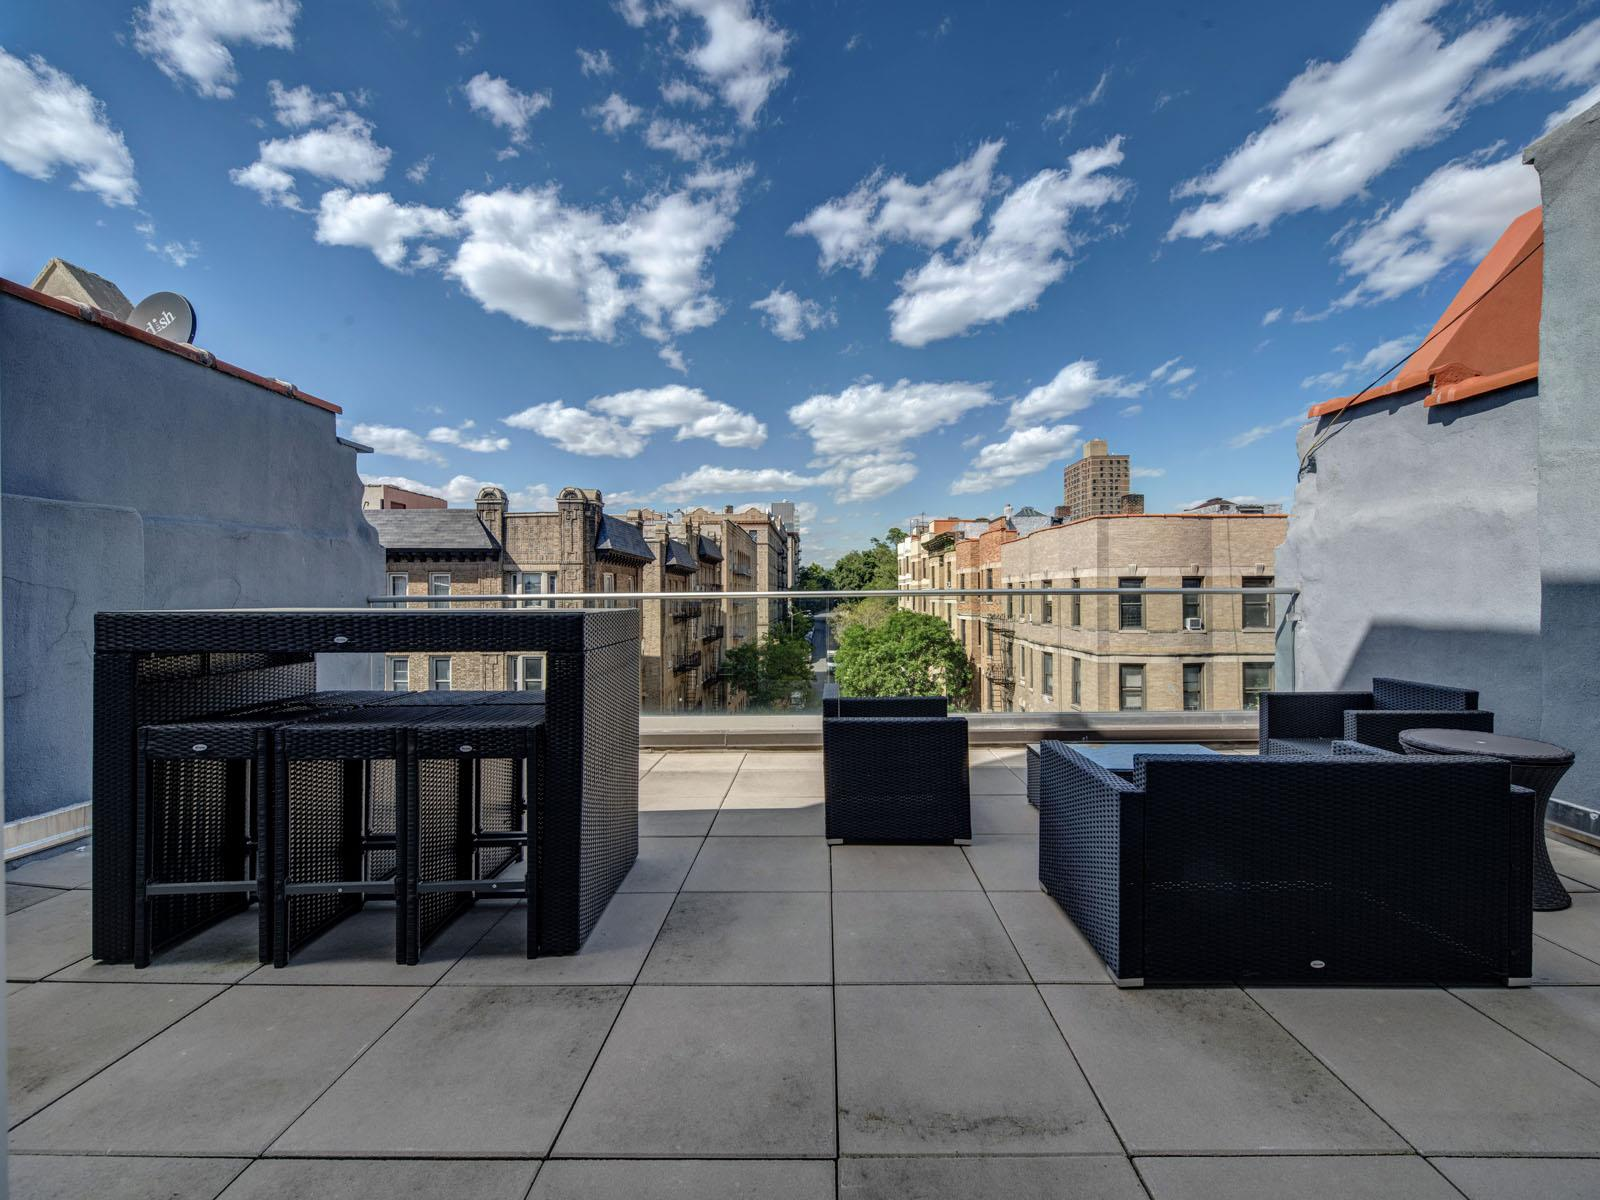 362 West 127th Street, 2-C West Harlem, NYC 10027 | East Egg Realty